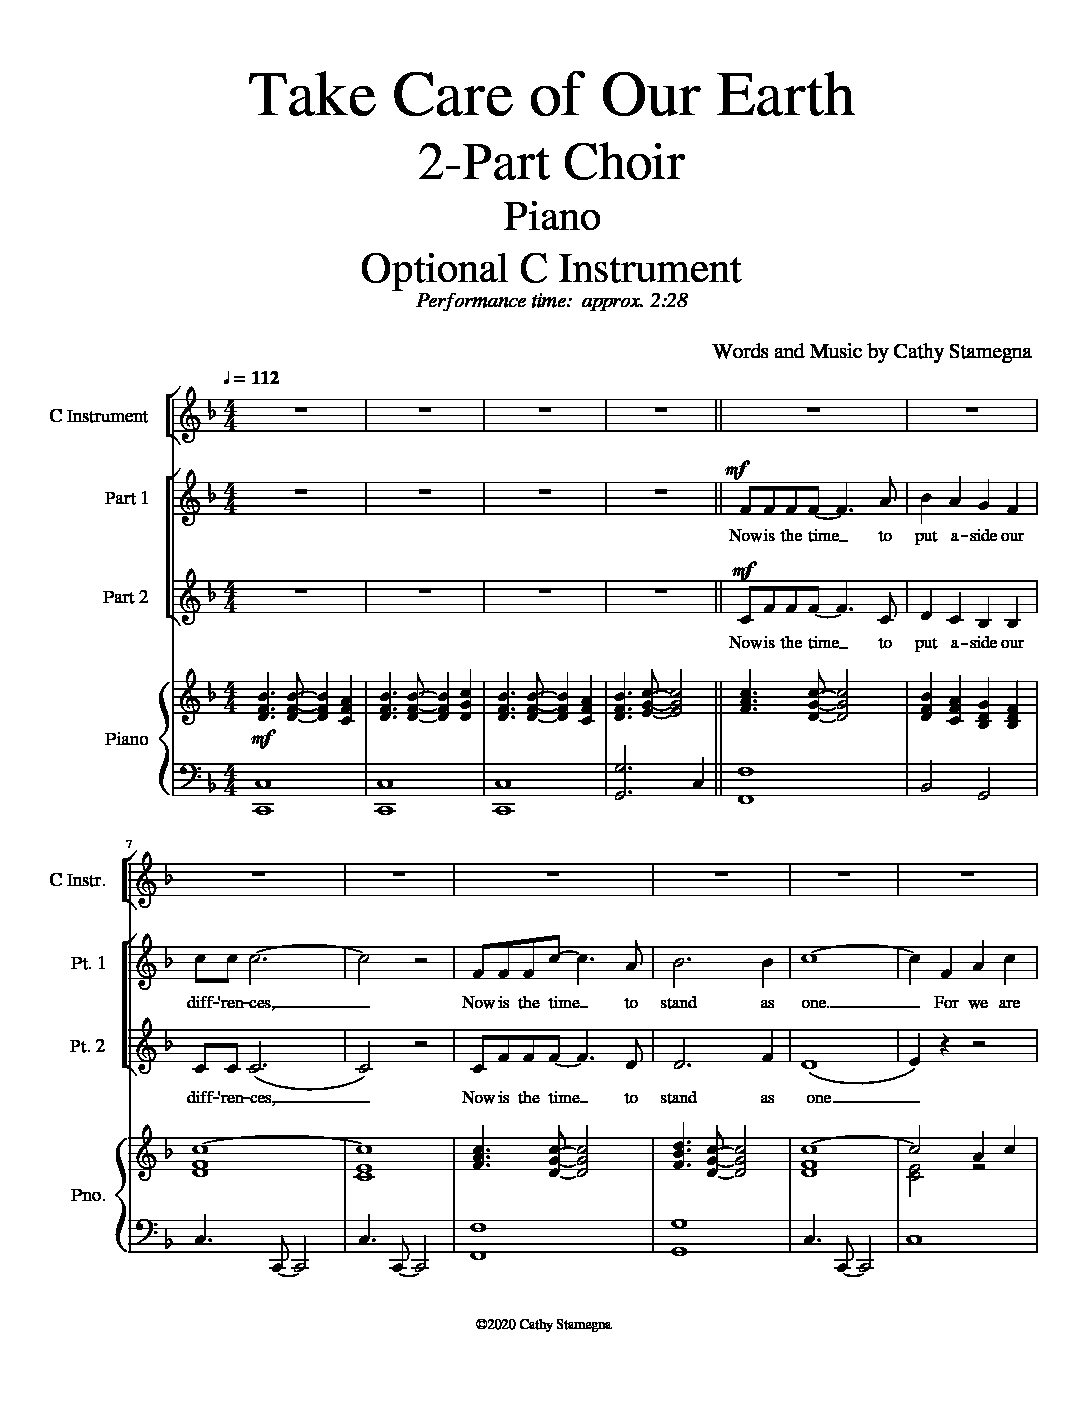 Take Care of Our Earth (Piano, Optional C Instrument) for Unison, 2-Part Choir; Accompaniment Track